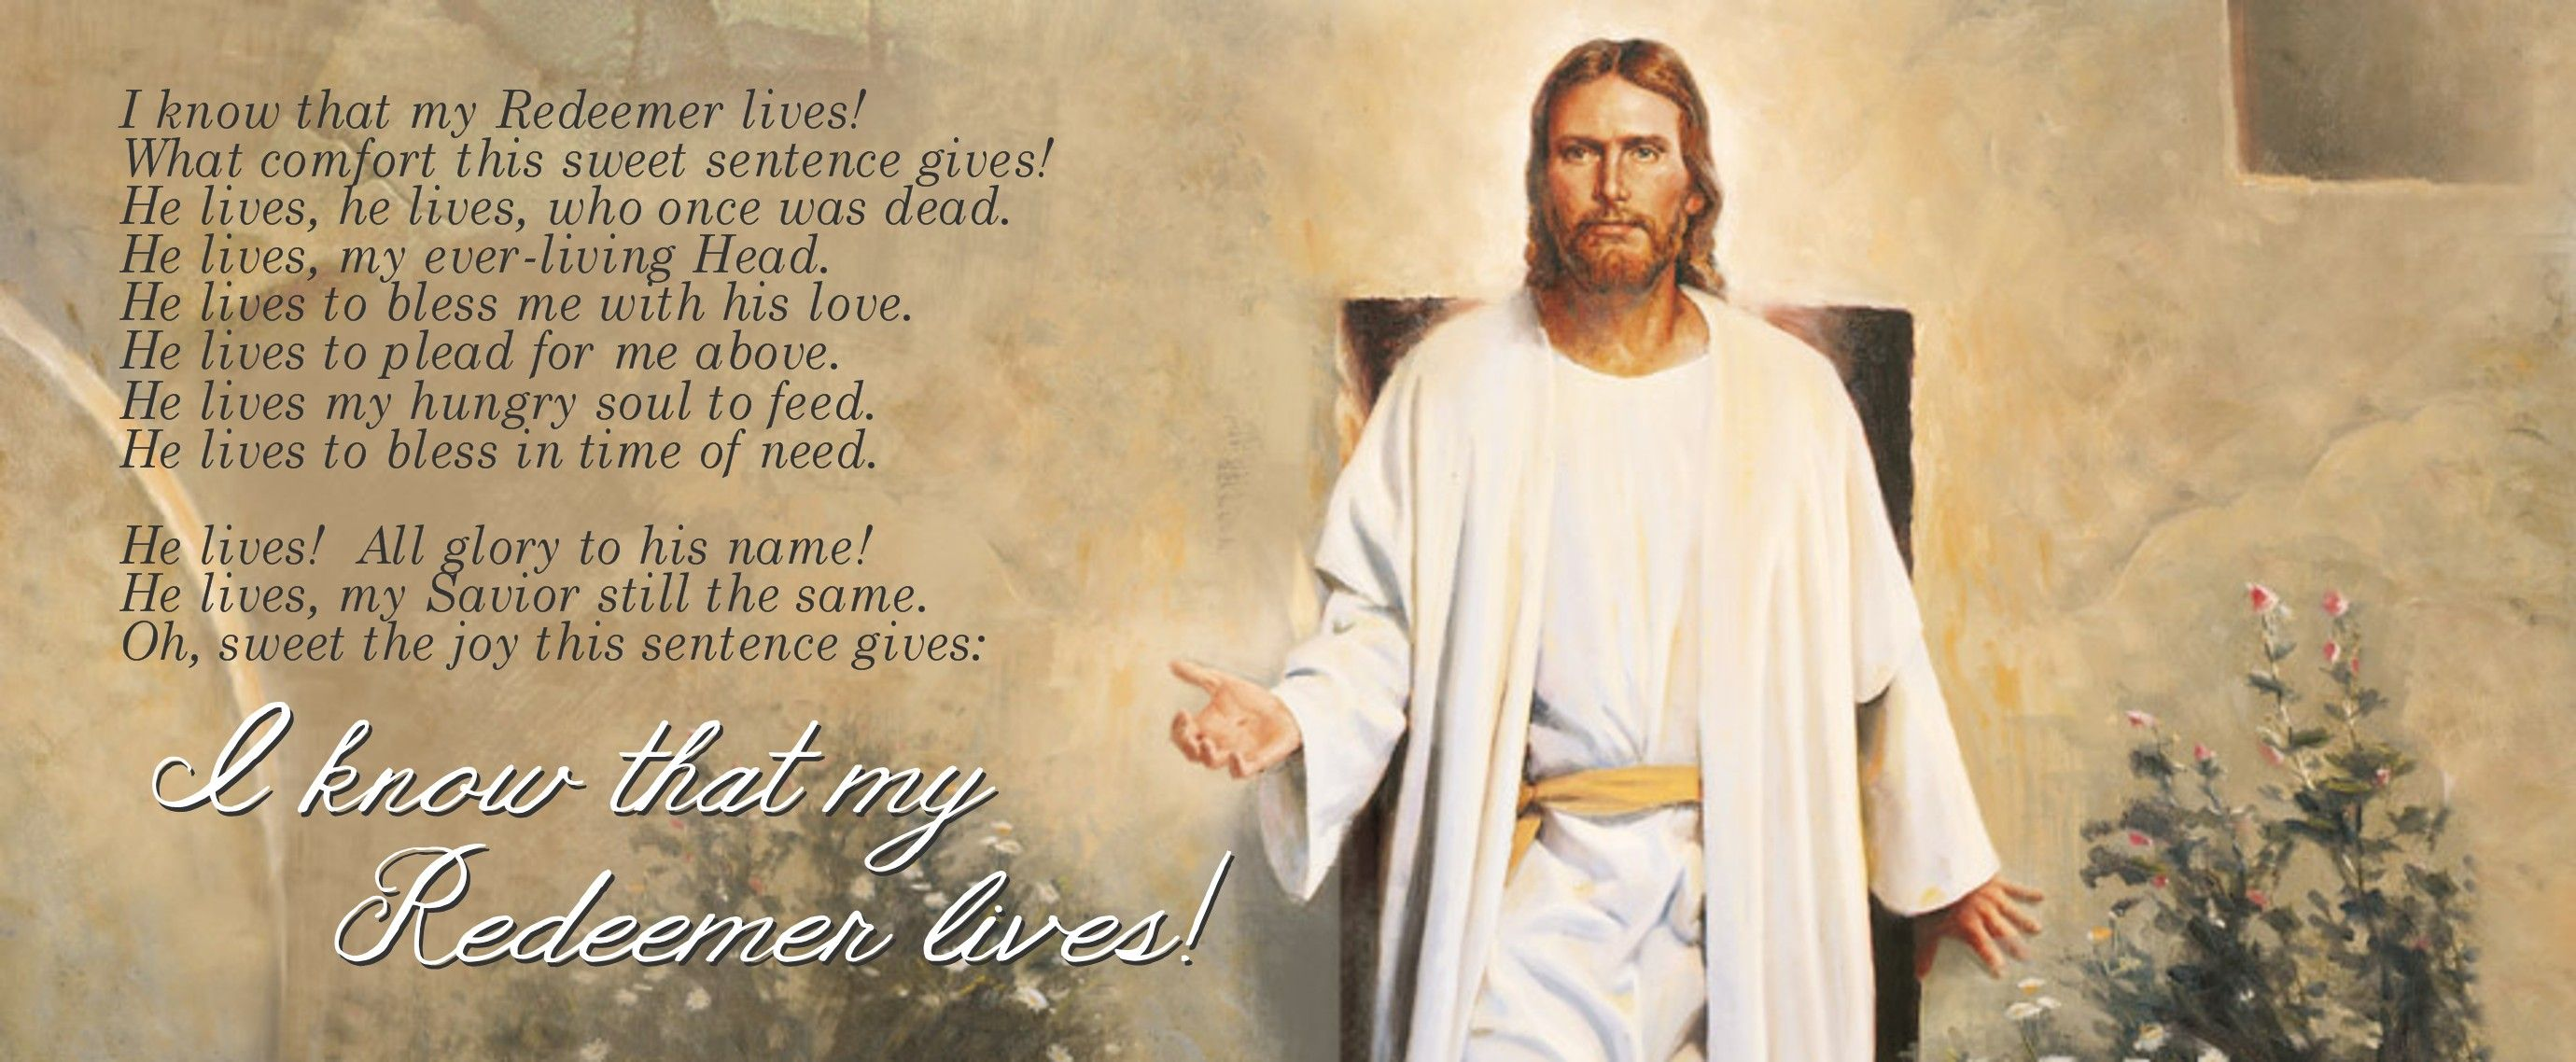 I Know That My Redeemer Lives Lds Easter Free Facebook Cover